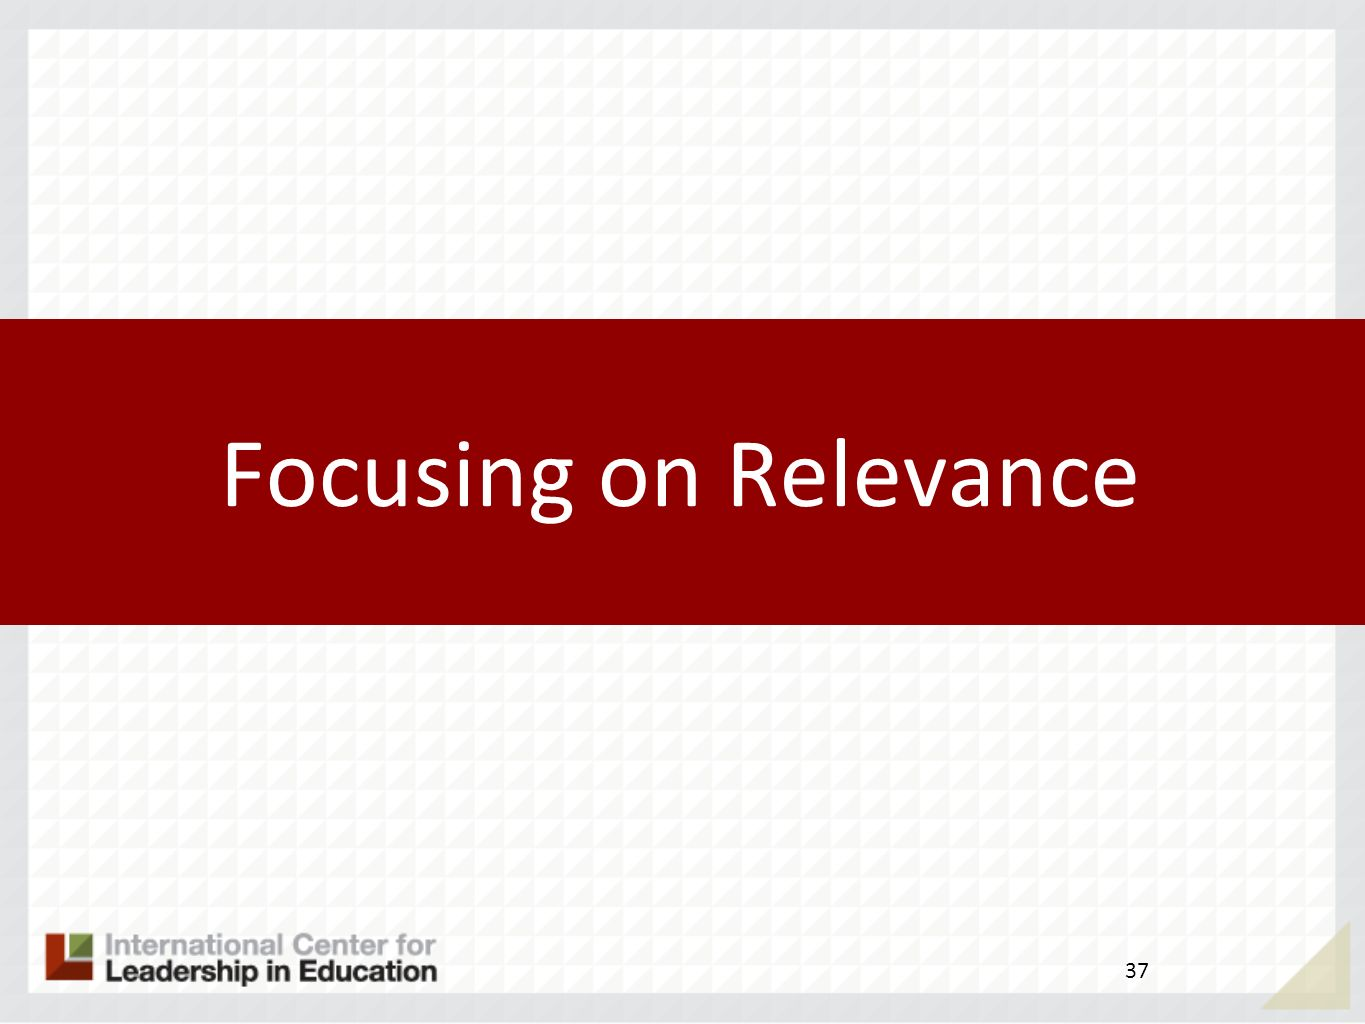 Focusing on Relevance